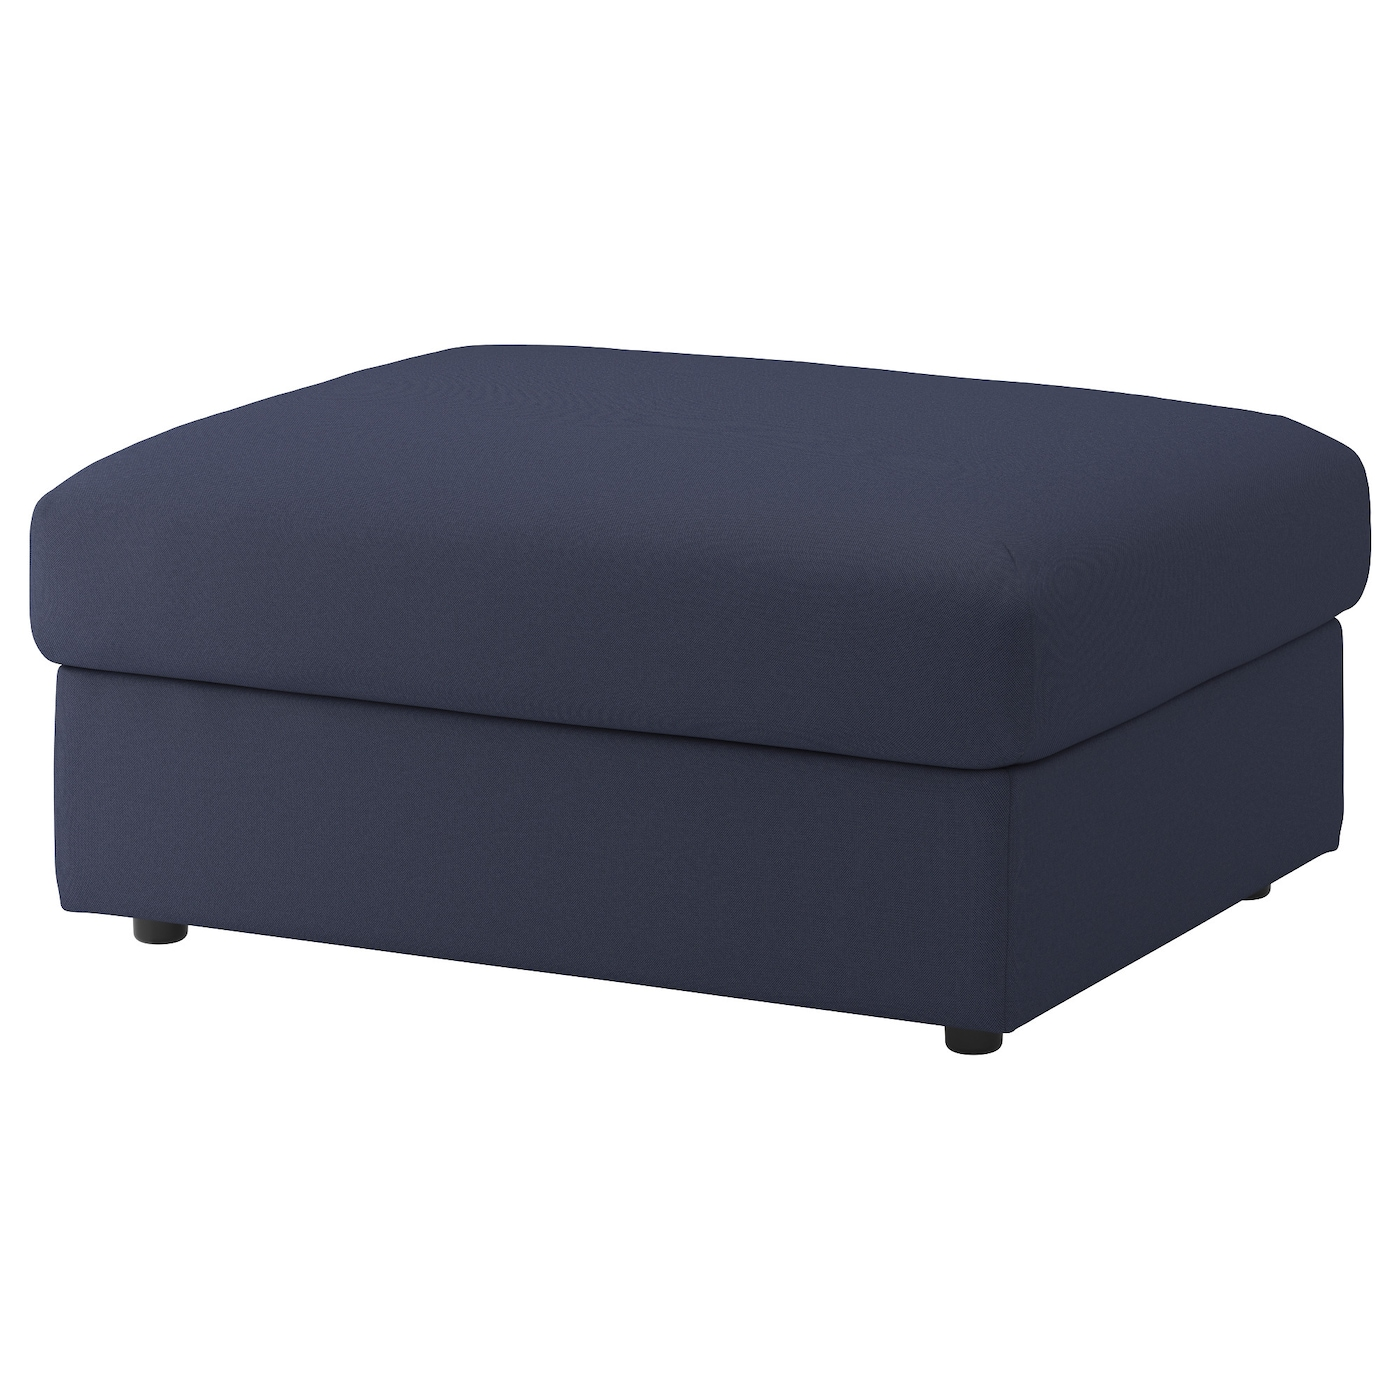 vimle repose pieds av rangement orrsta bleu noir ikea. Black Bedroom Furniture Sets. Home Design Ideas